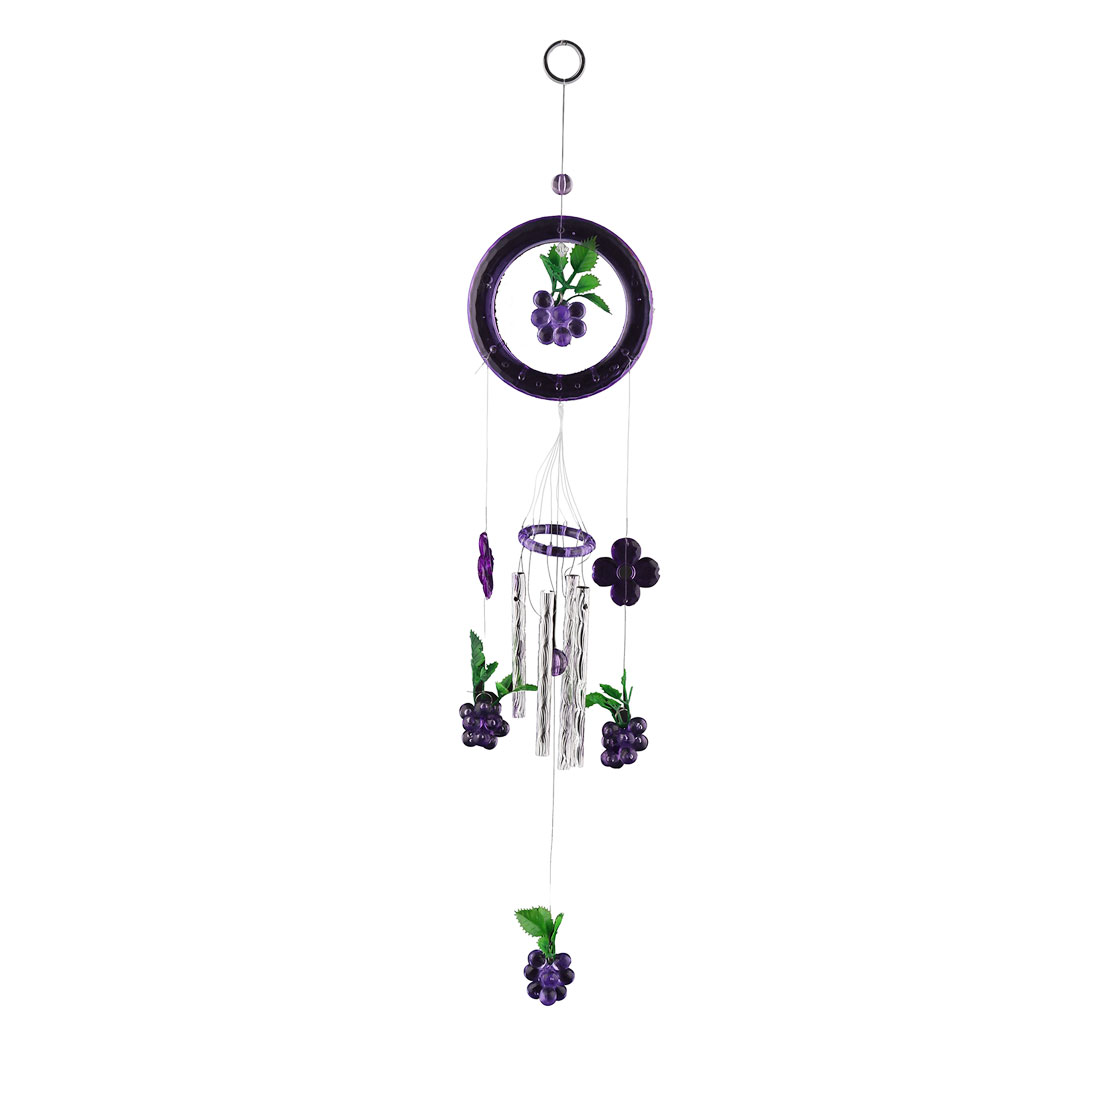 Home Bedroom Plastic Birthday Gift 4 Tubes Grape Hanging Wind Bell Chime Windbell